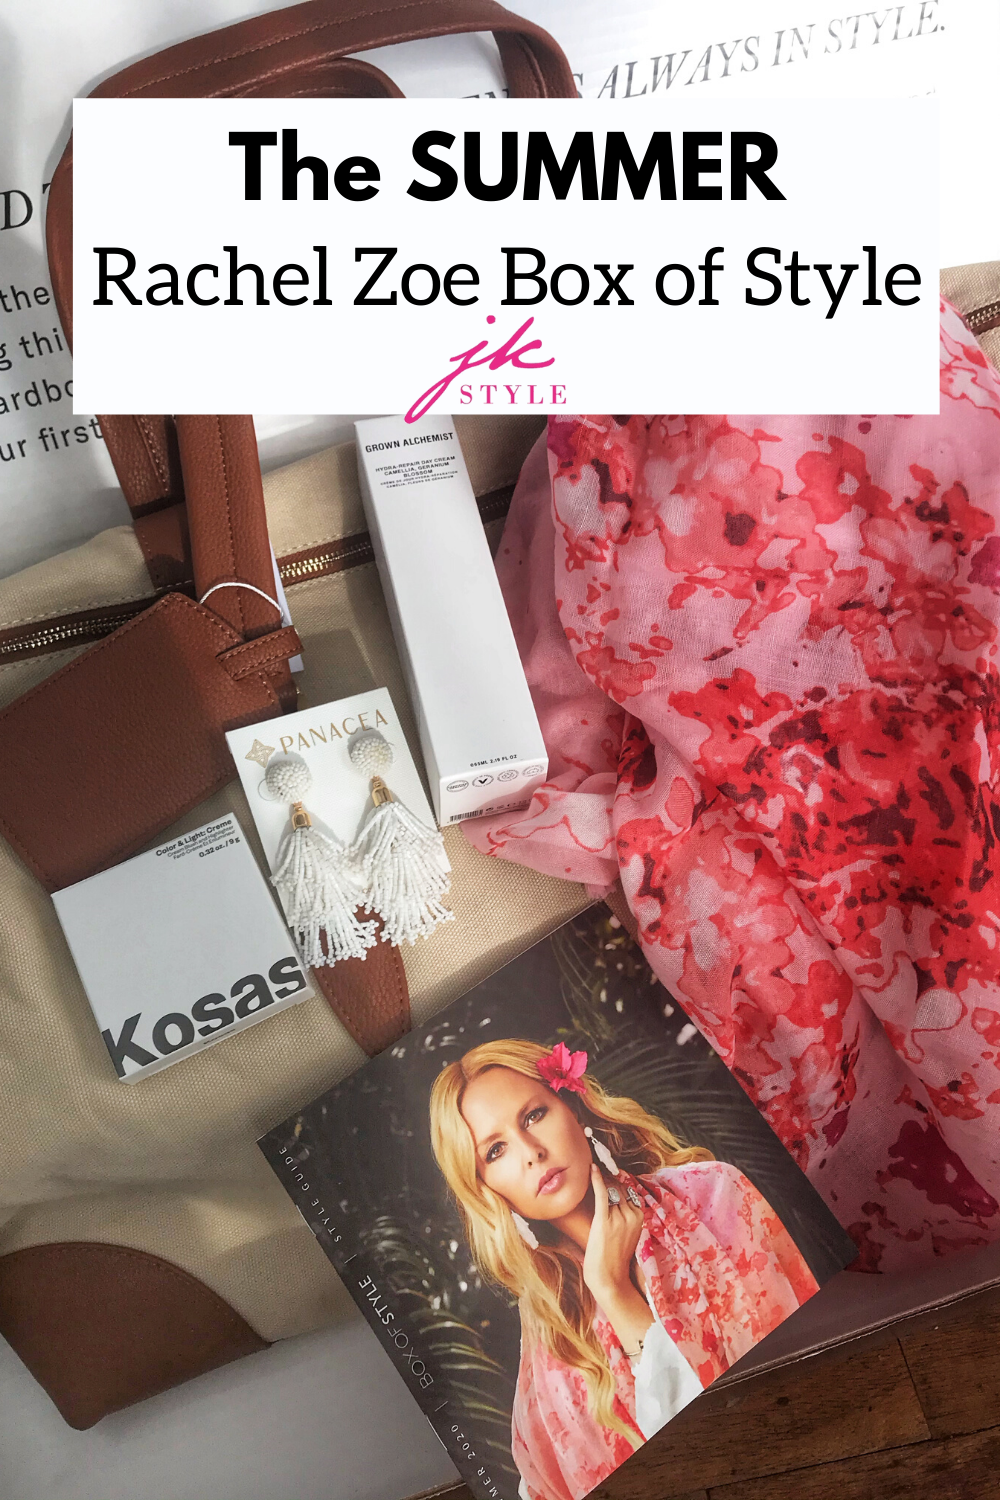 The Summer Rachel Zoe Box of Style